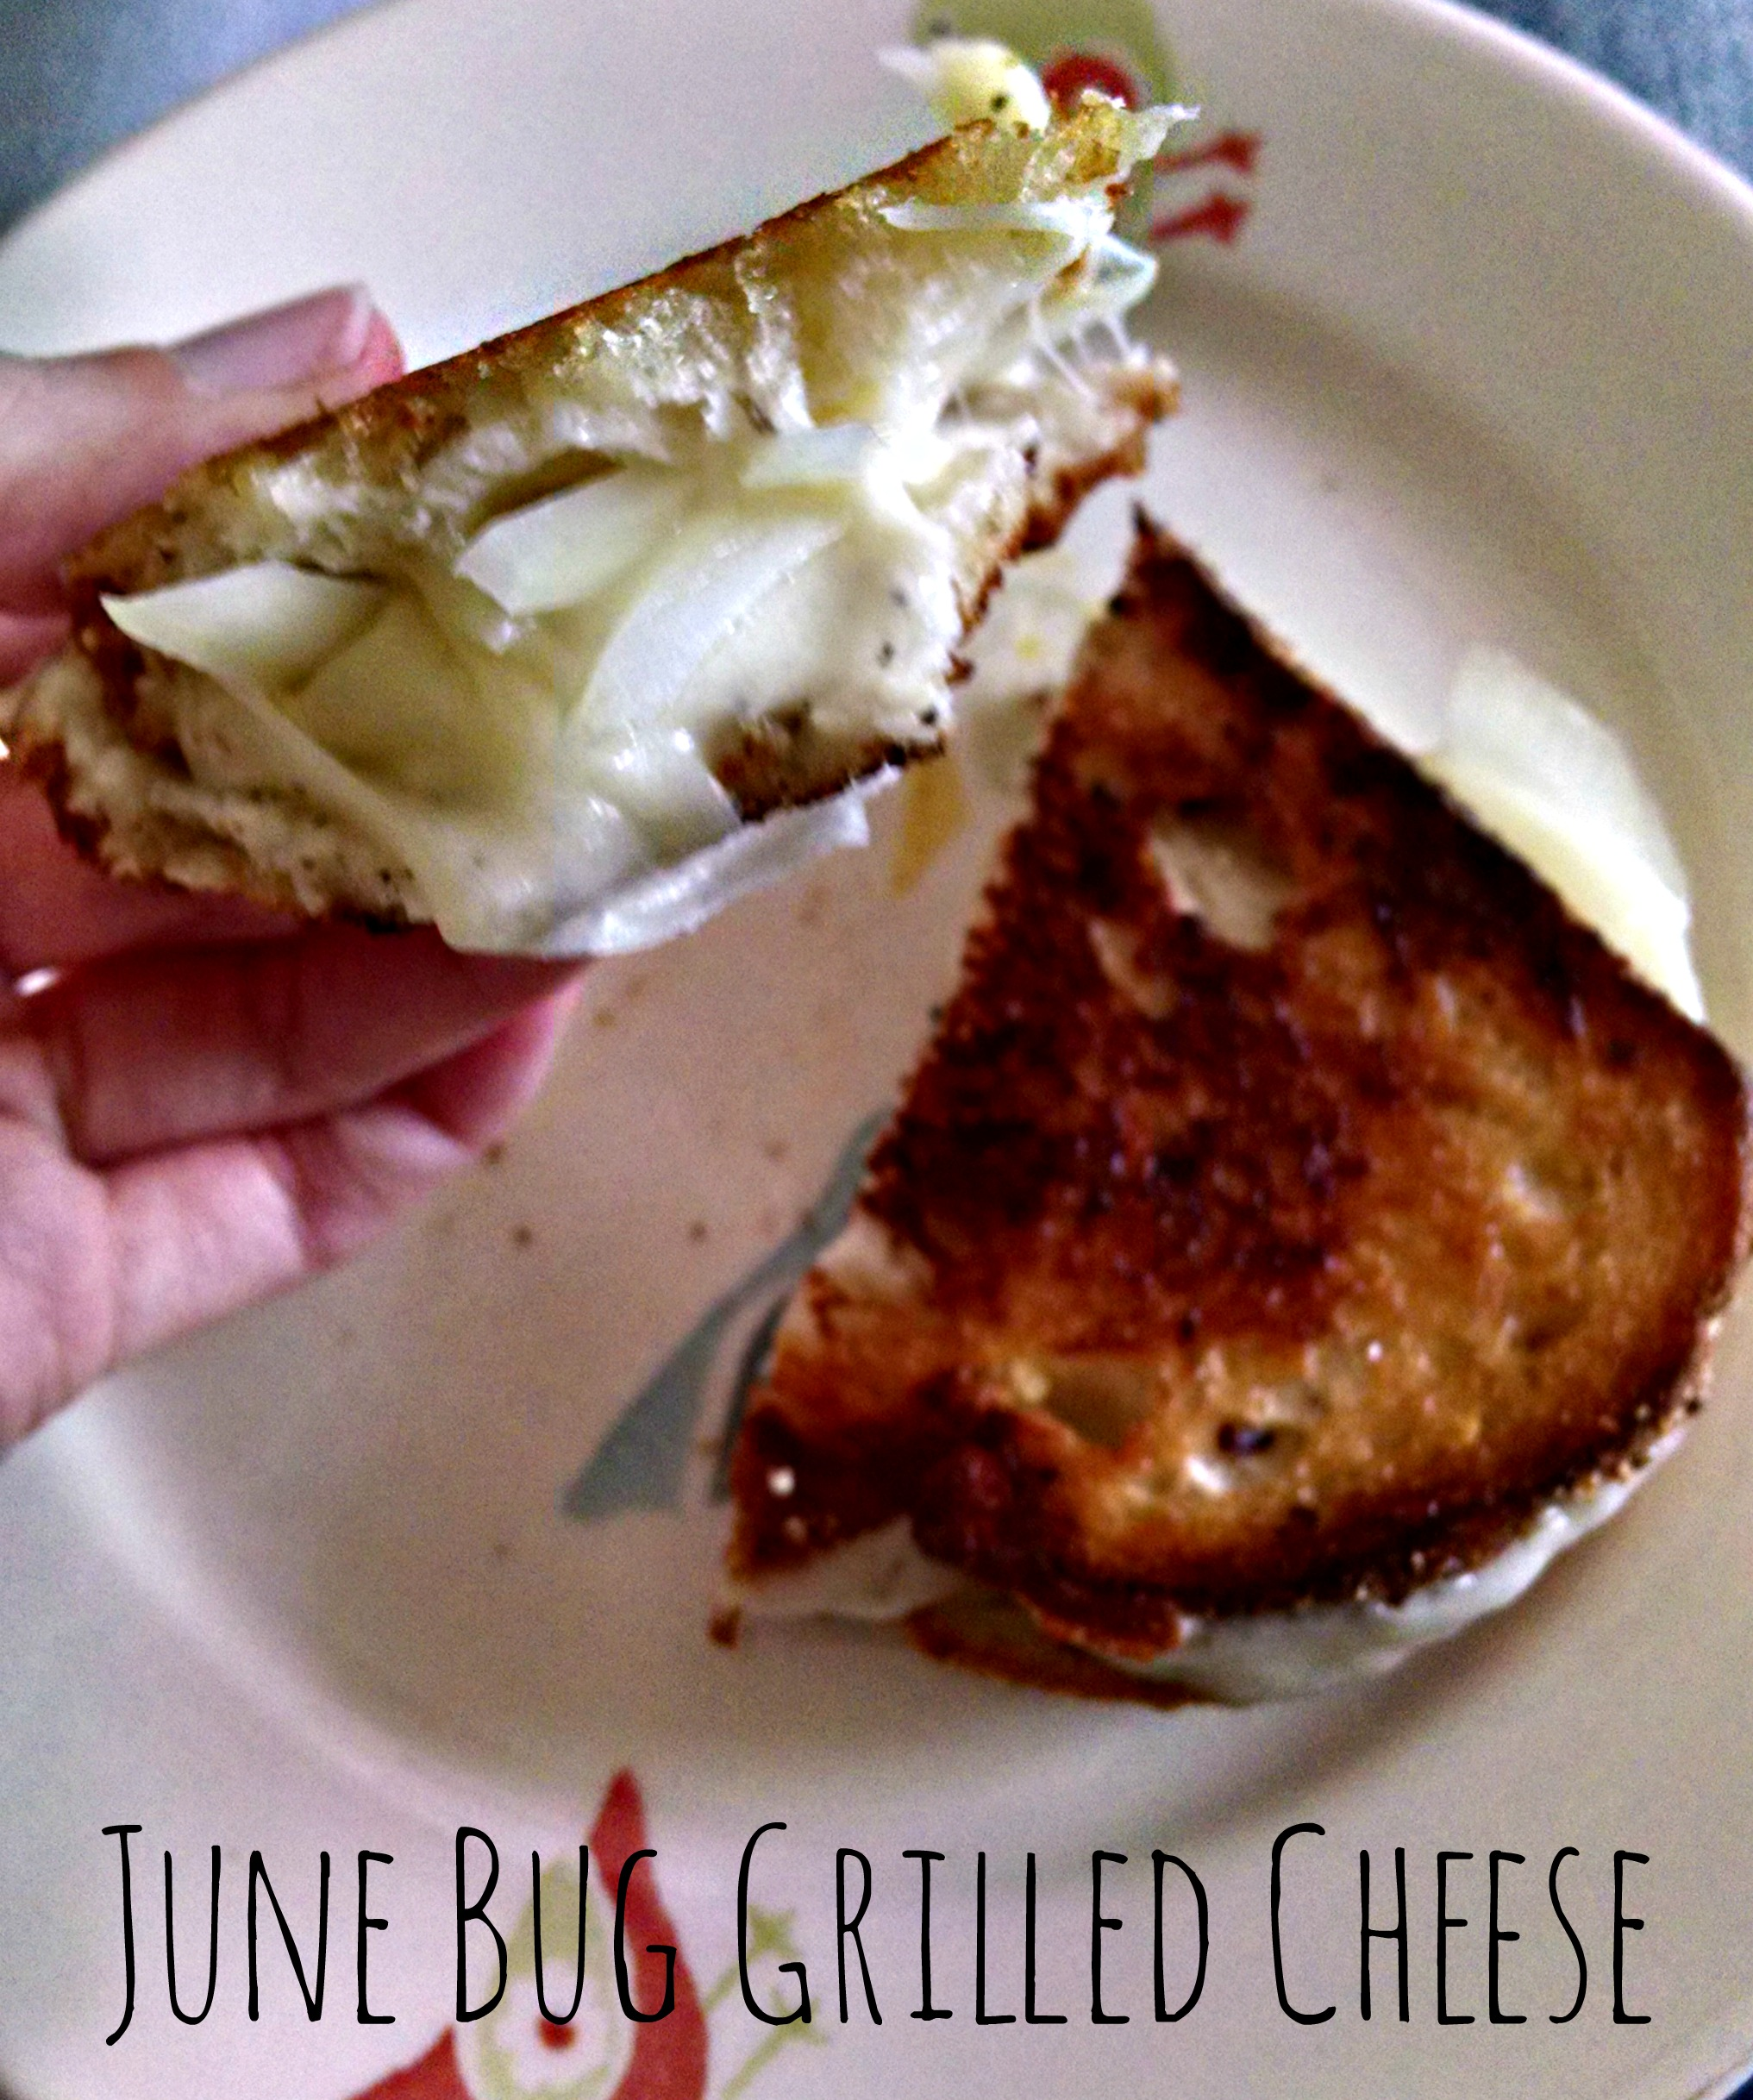 June Bug June Bug Grilled Cheese From